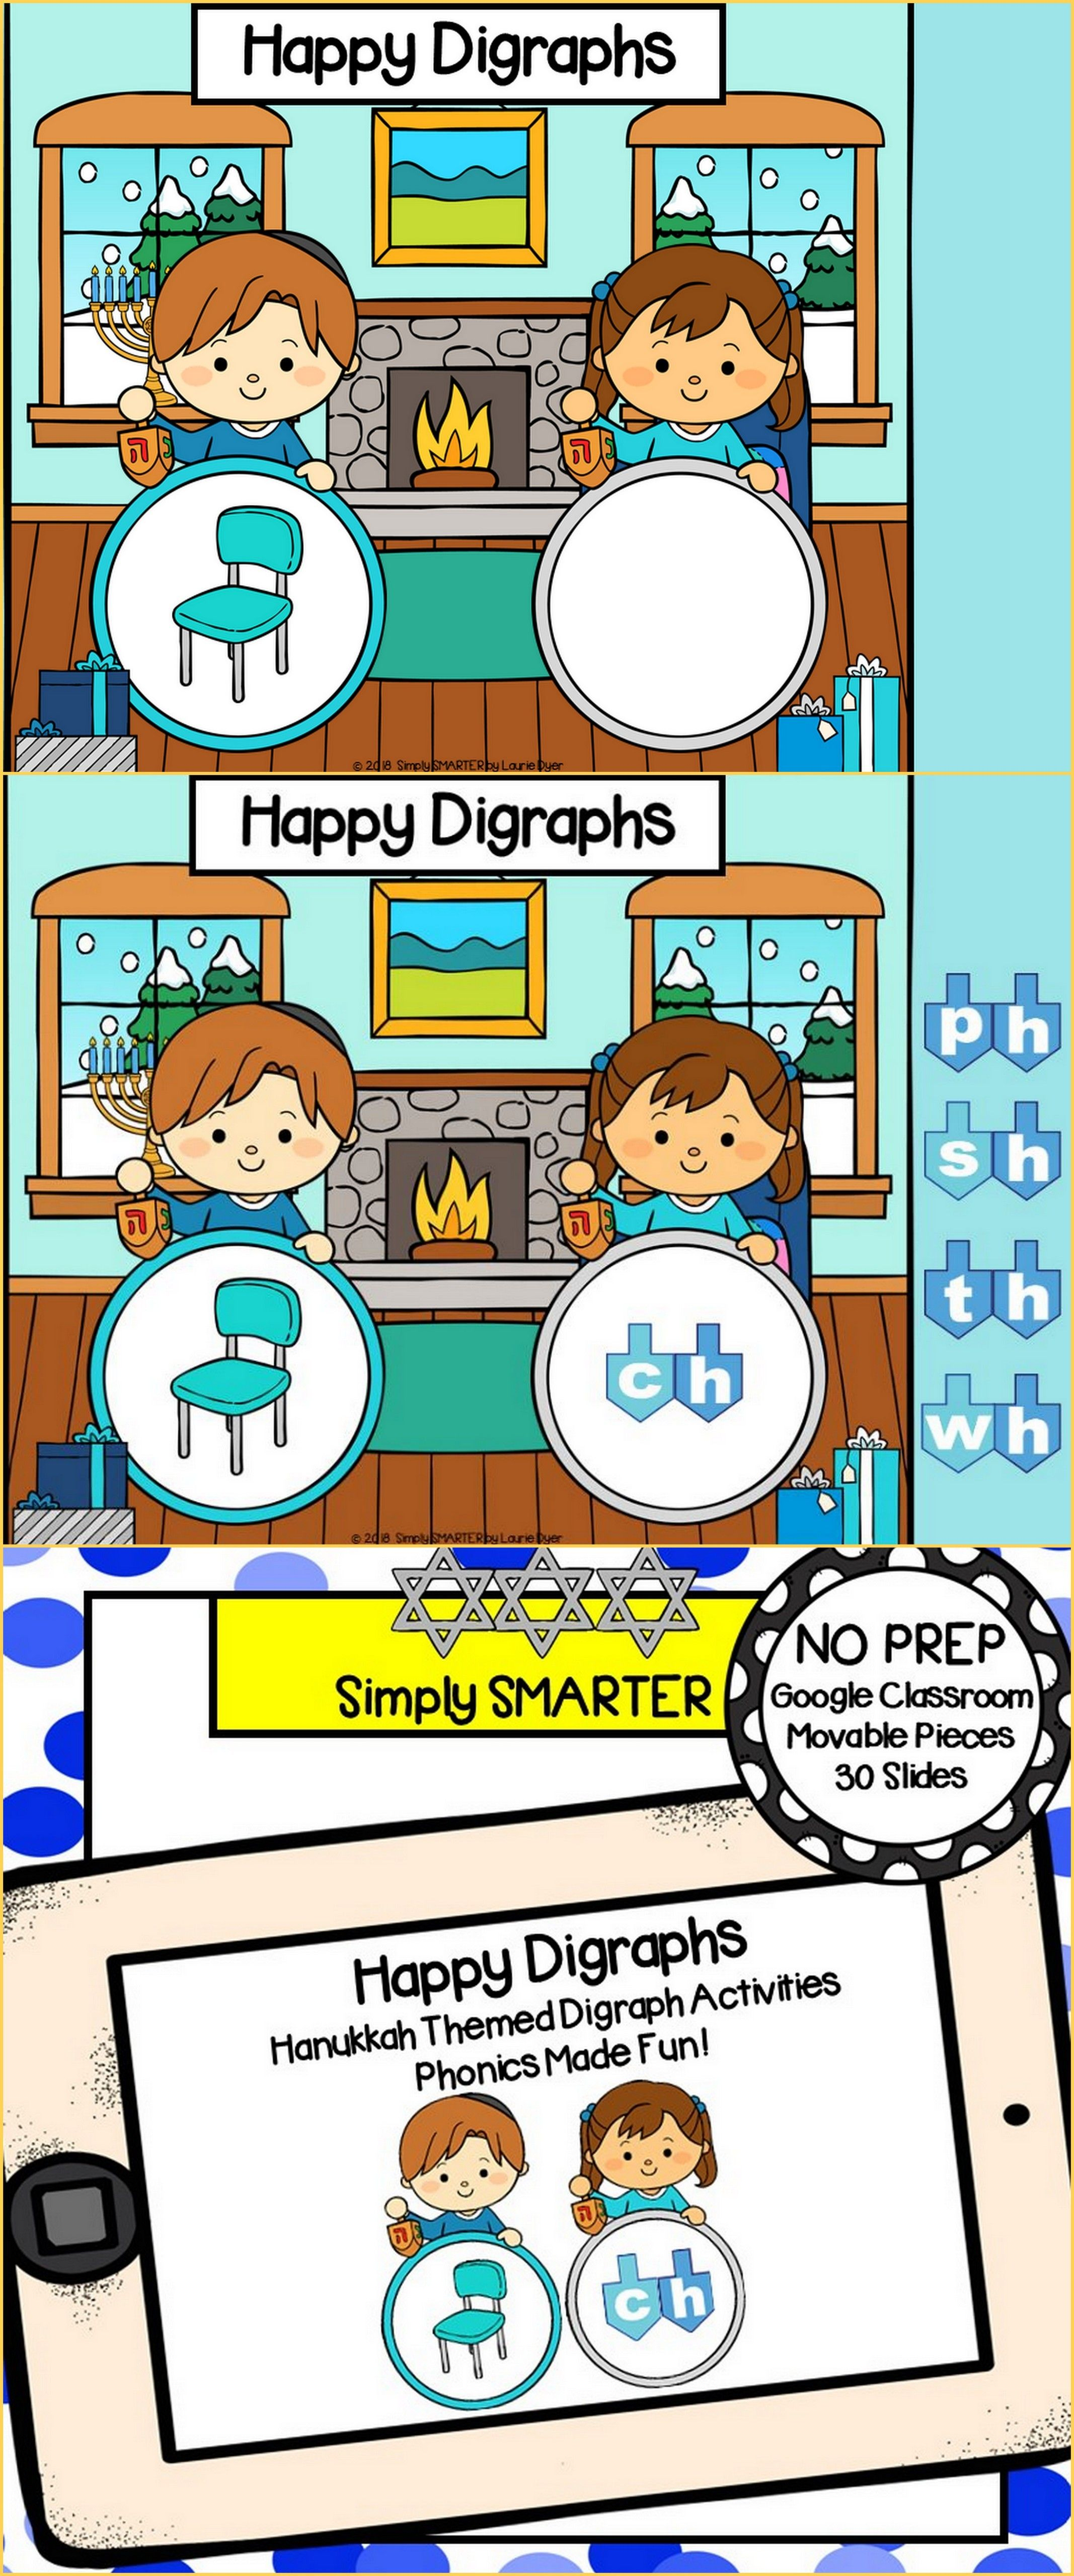 Hanukkah Themed Beginning Digraph Activities For